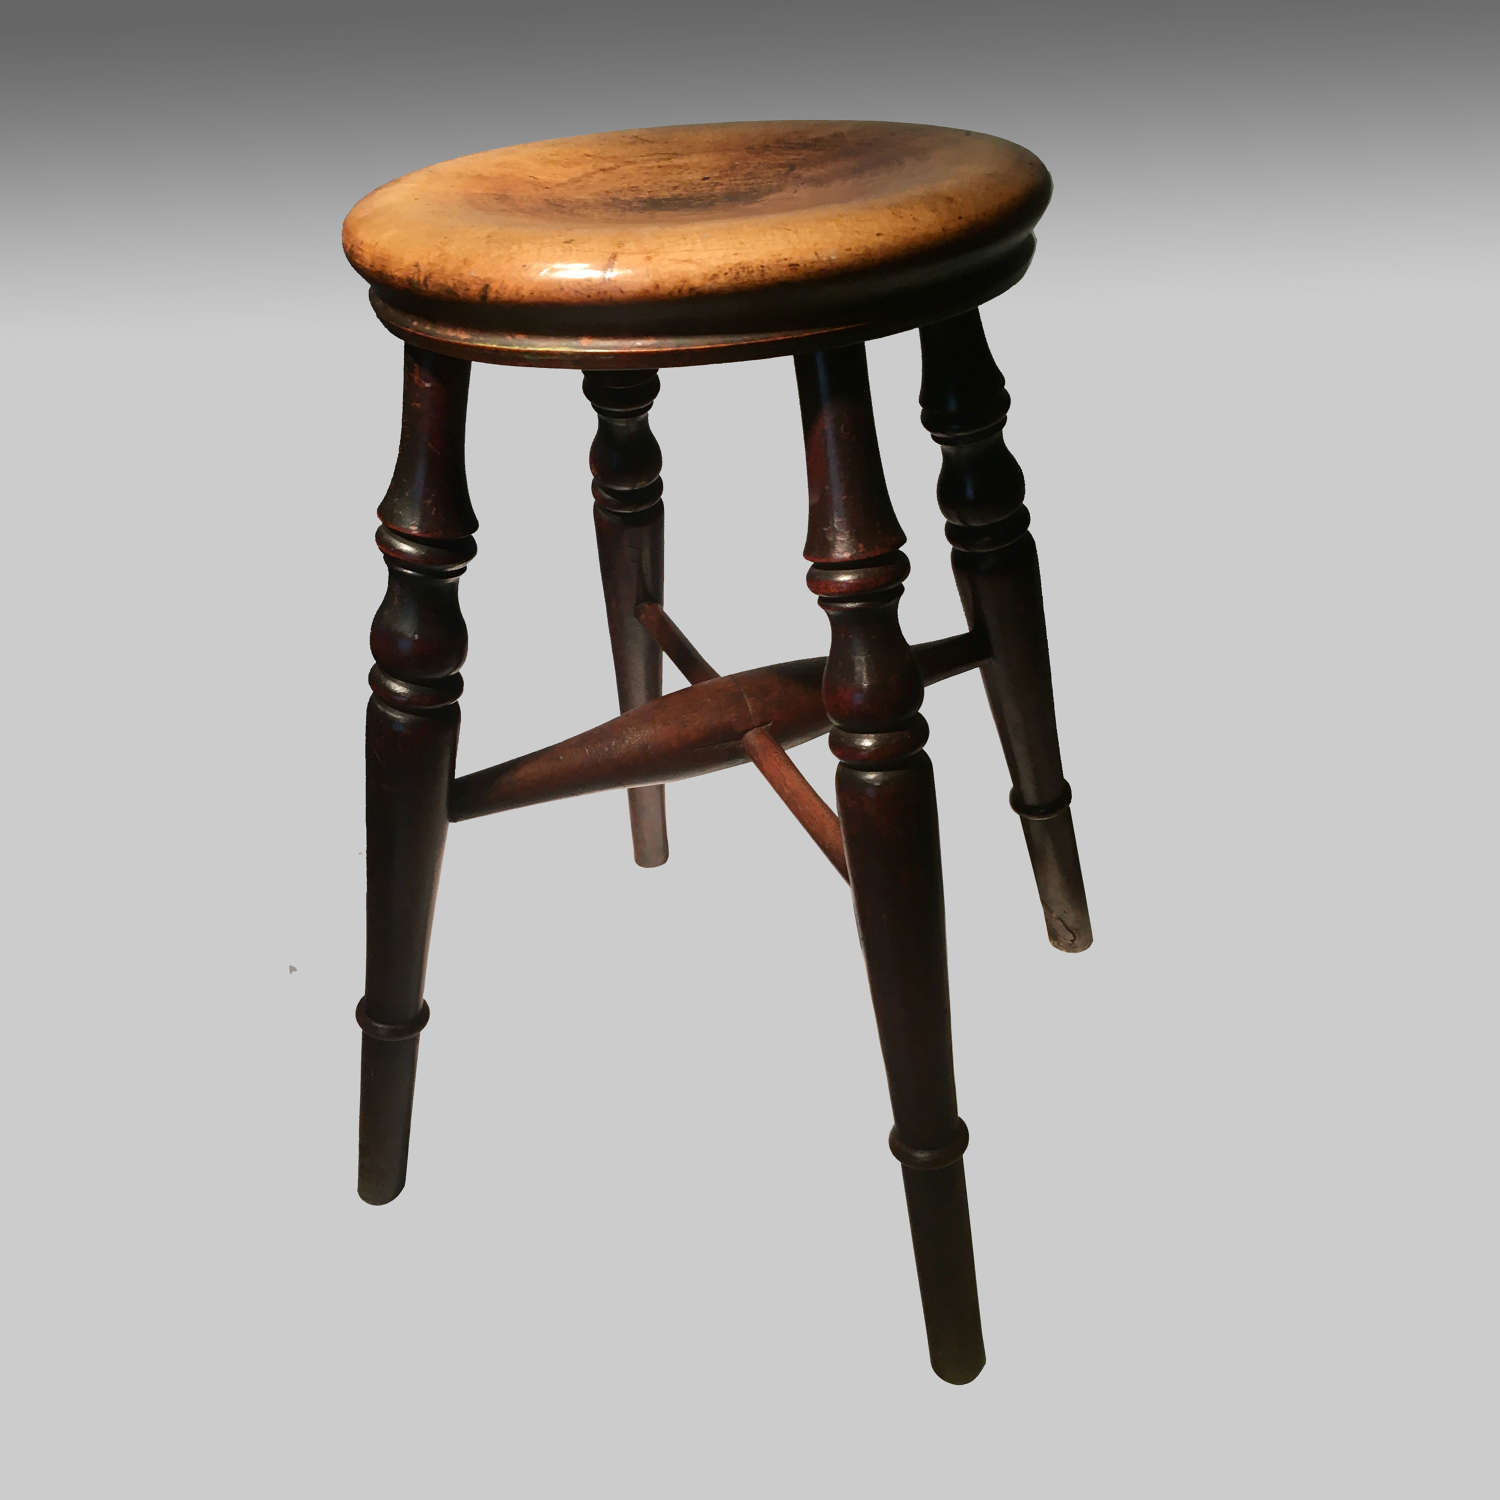 19th century pub or tavern stool